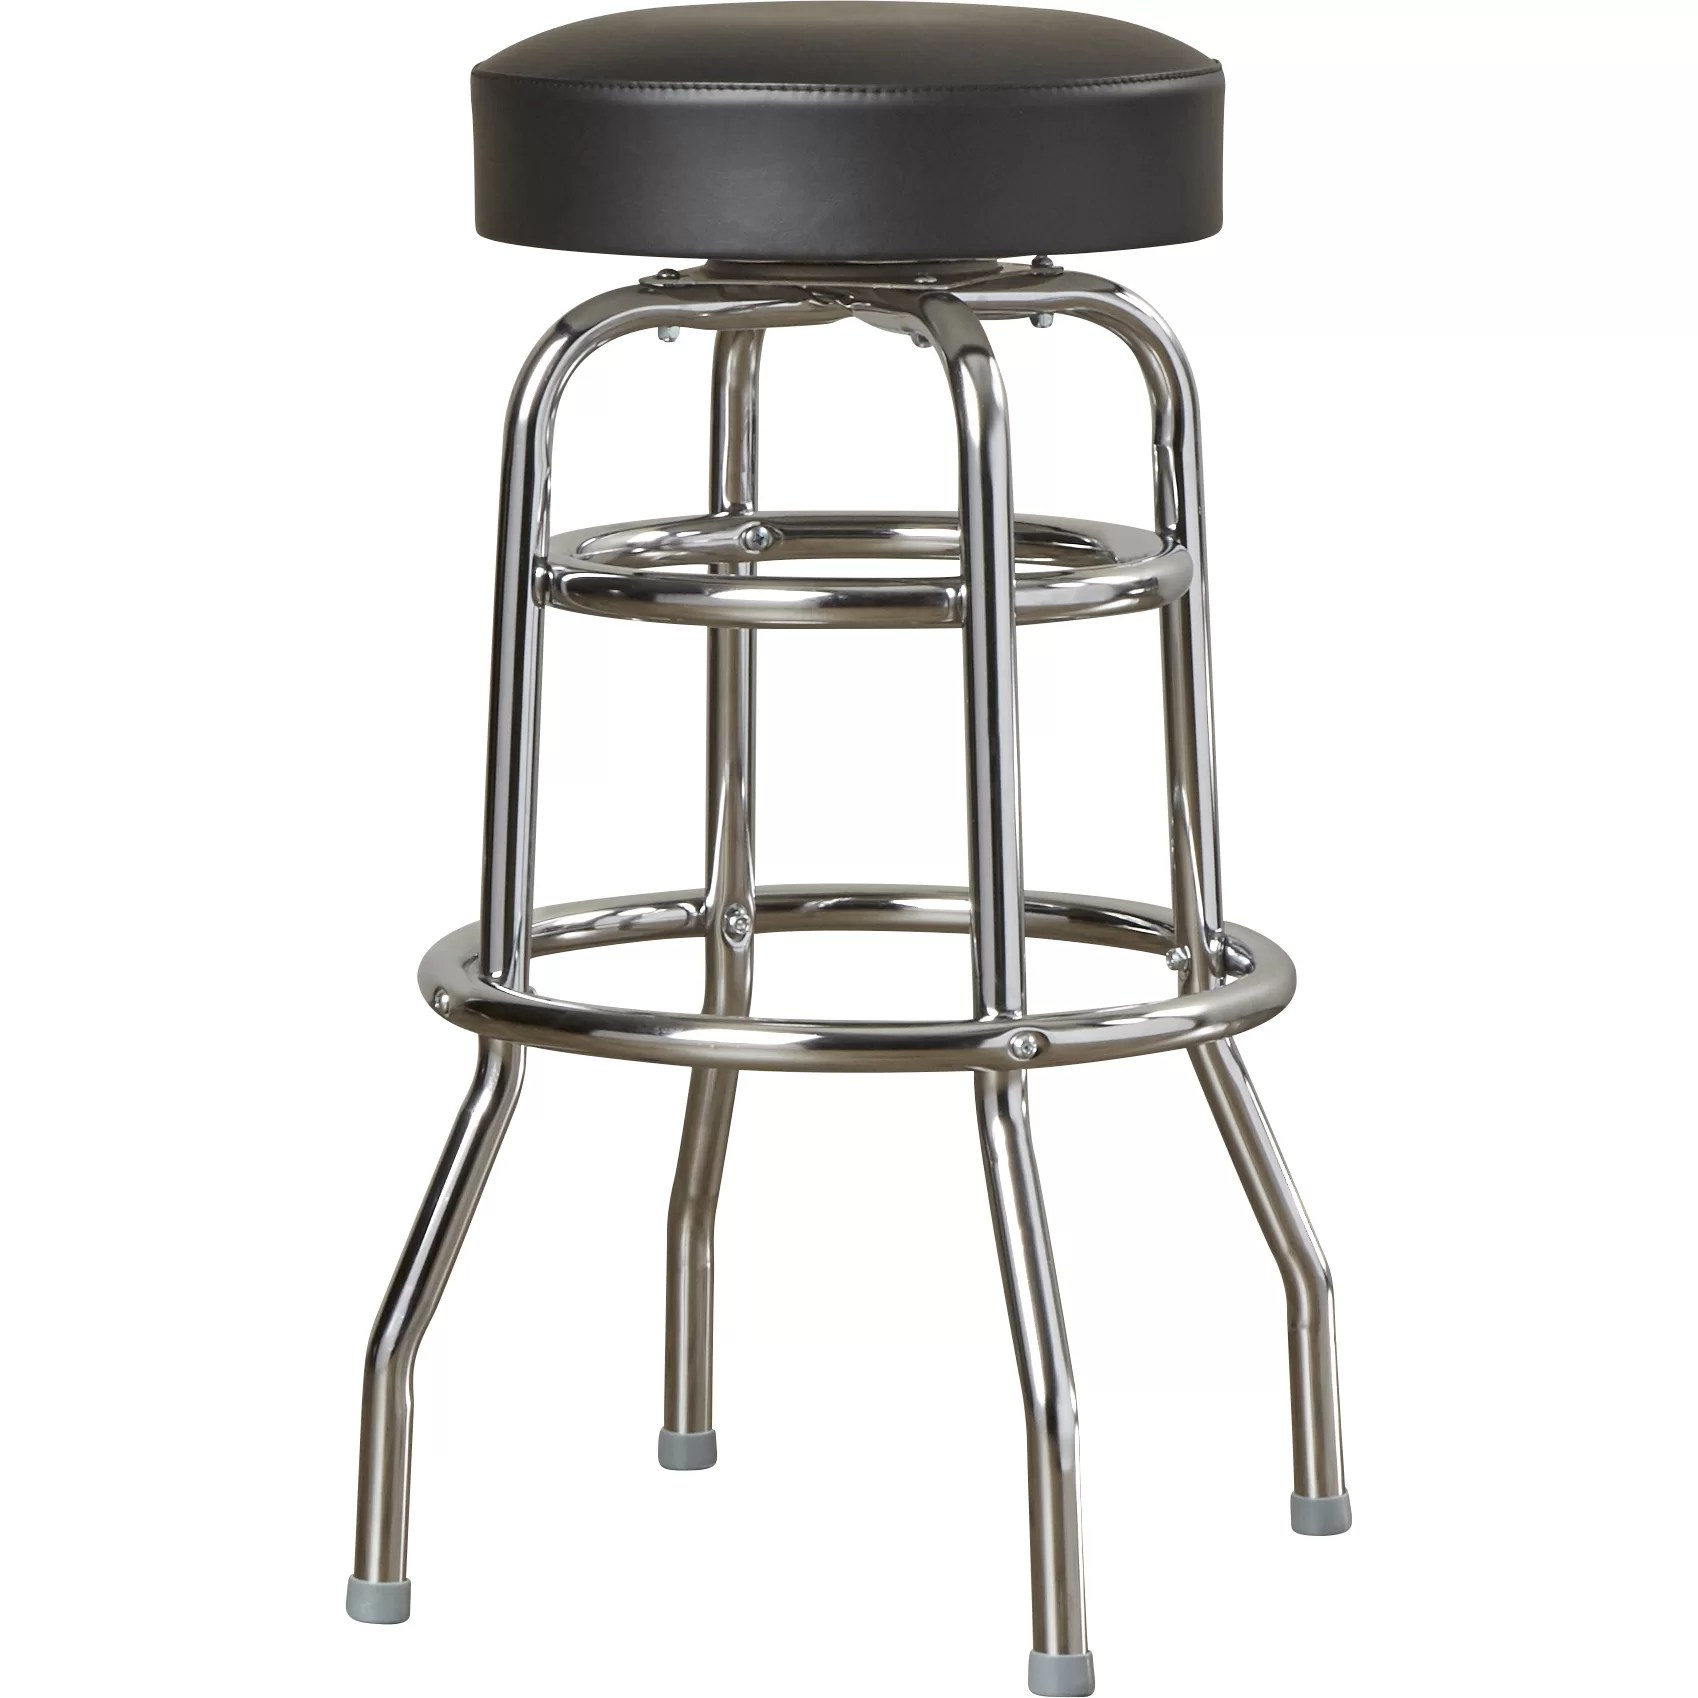 Bar And Stools For Home Richardson Seating Retro Home 30 Quot Swivel Bar Stool